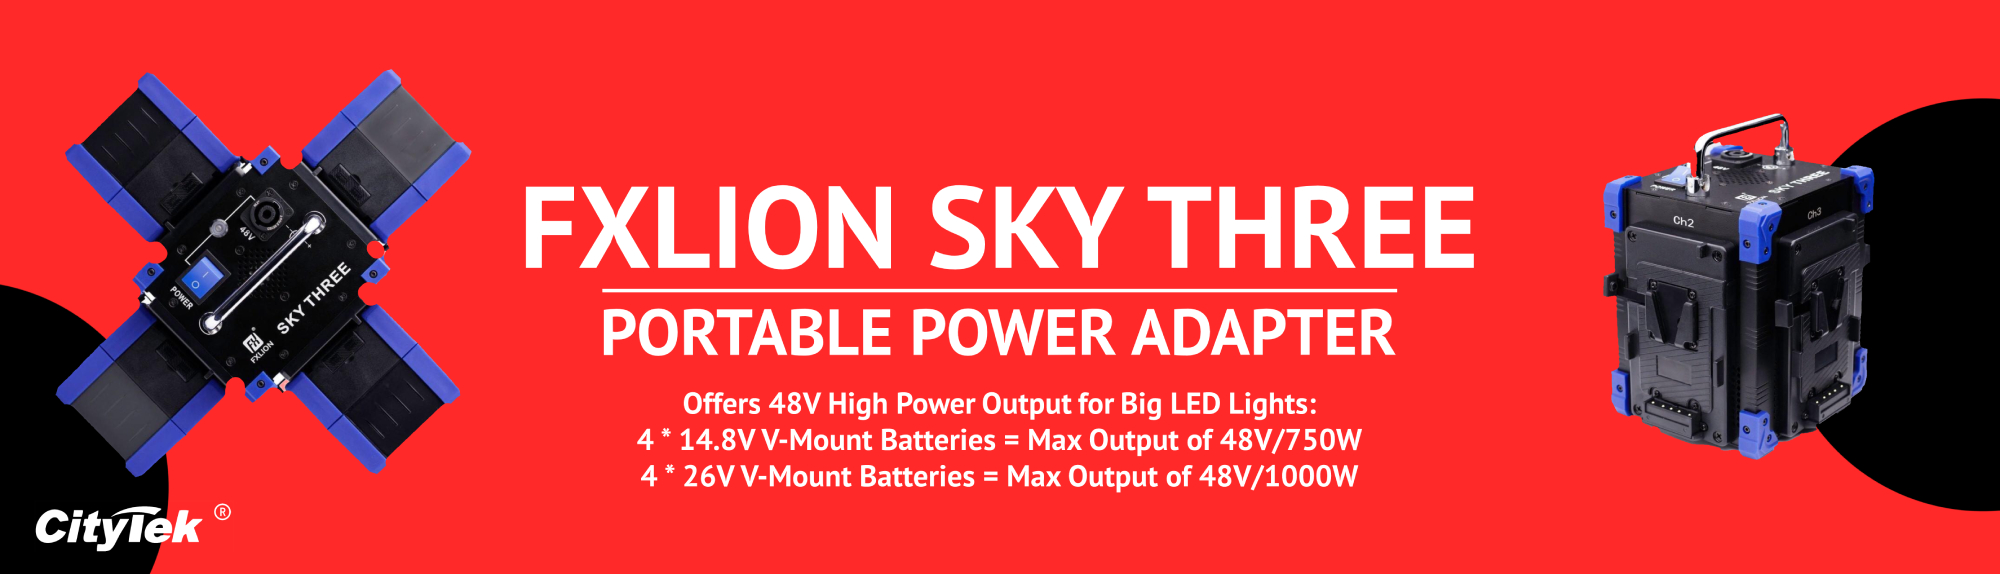 Fxlion Sky Three Power Adapter Banner